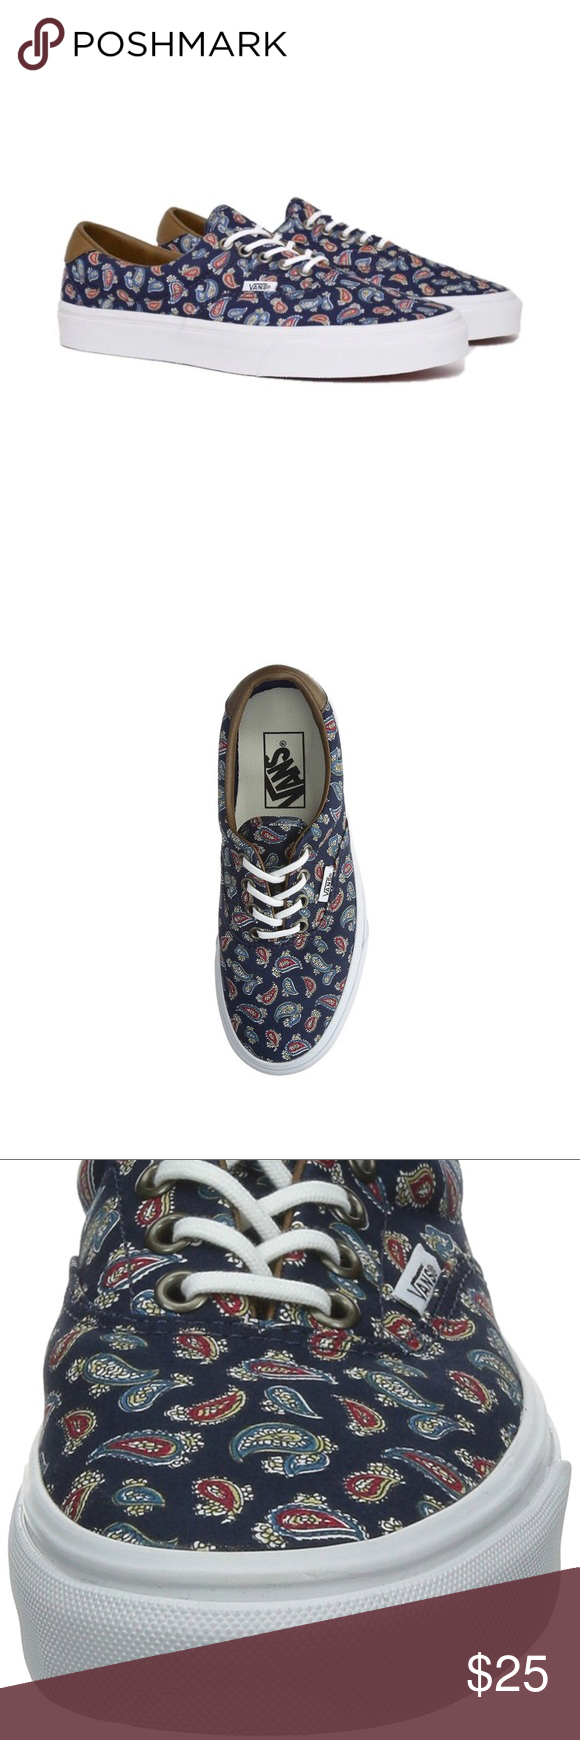 59945e91e4 Unisex Vans Era 59 Eclipse Navy Blue Paisley Shoes I will add pictures of  the actual